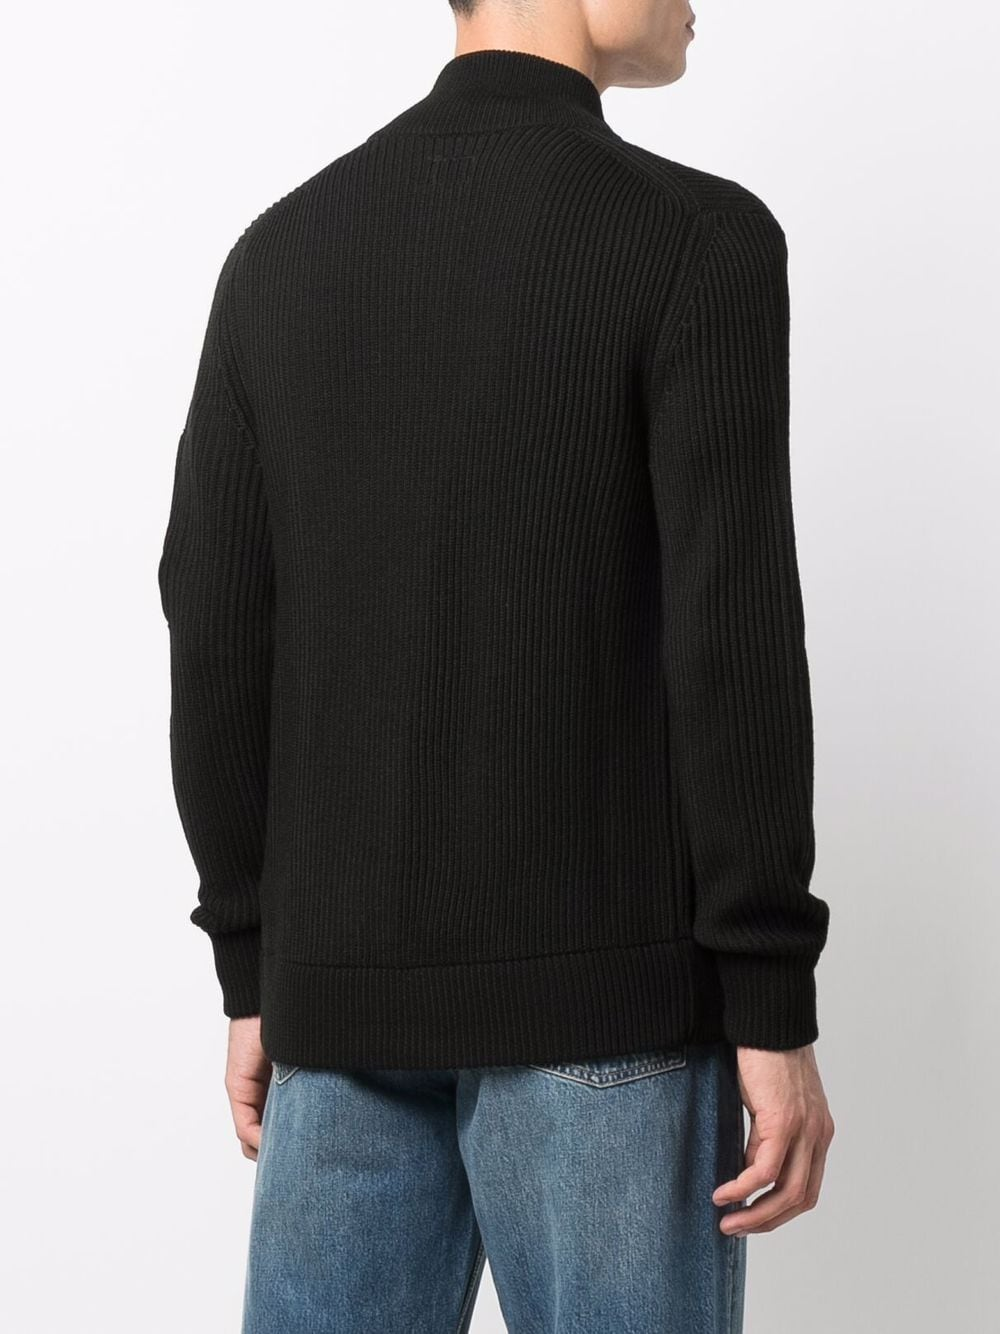 sweater with zip man black C.P. COMPANY | Sweaters | 11CMKN180A005292A999